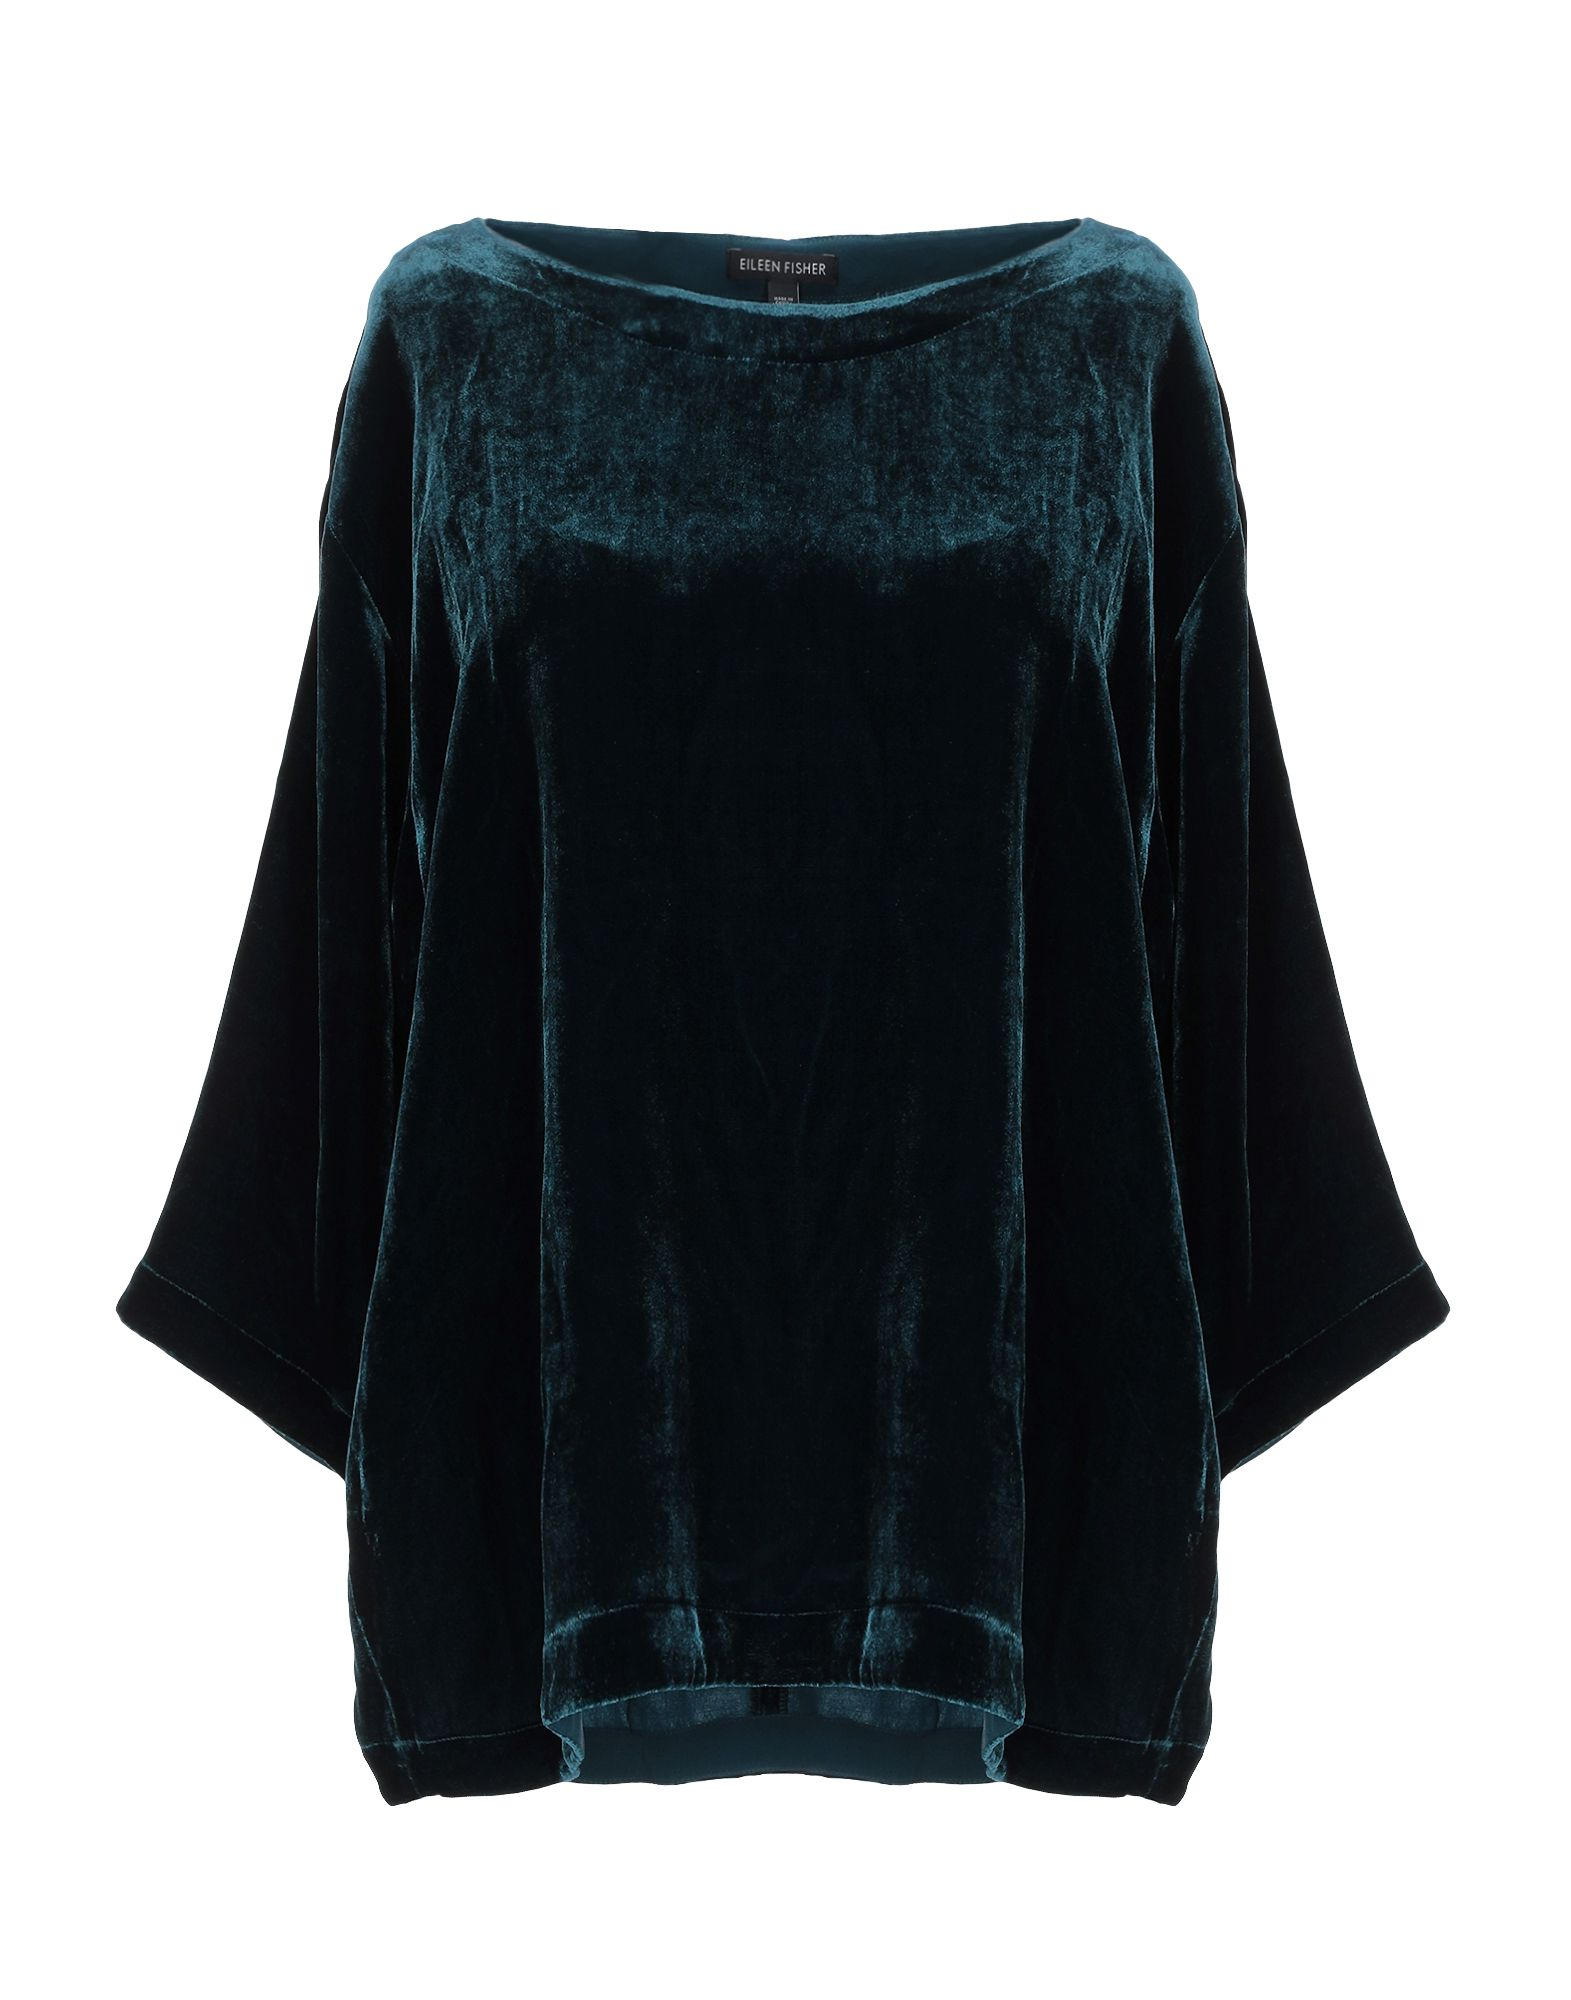 EILEEN FISHER Блузка eileen fisher new black long sleeve drape top msrp $278 00